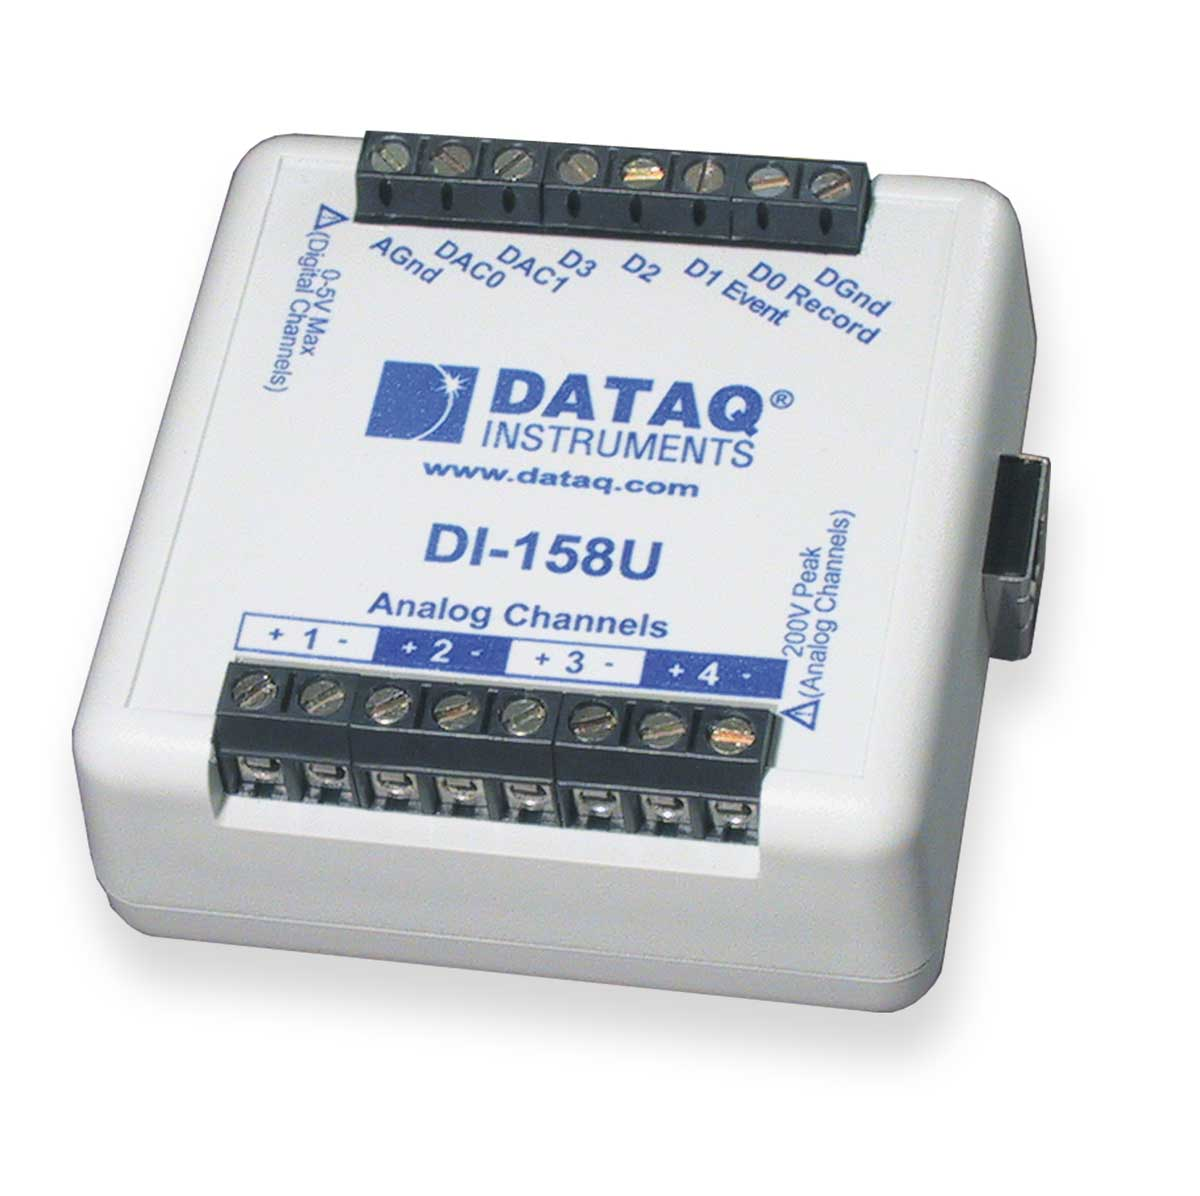 DI-158 Data Acquisition Starter Kit